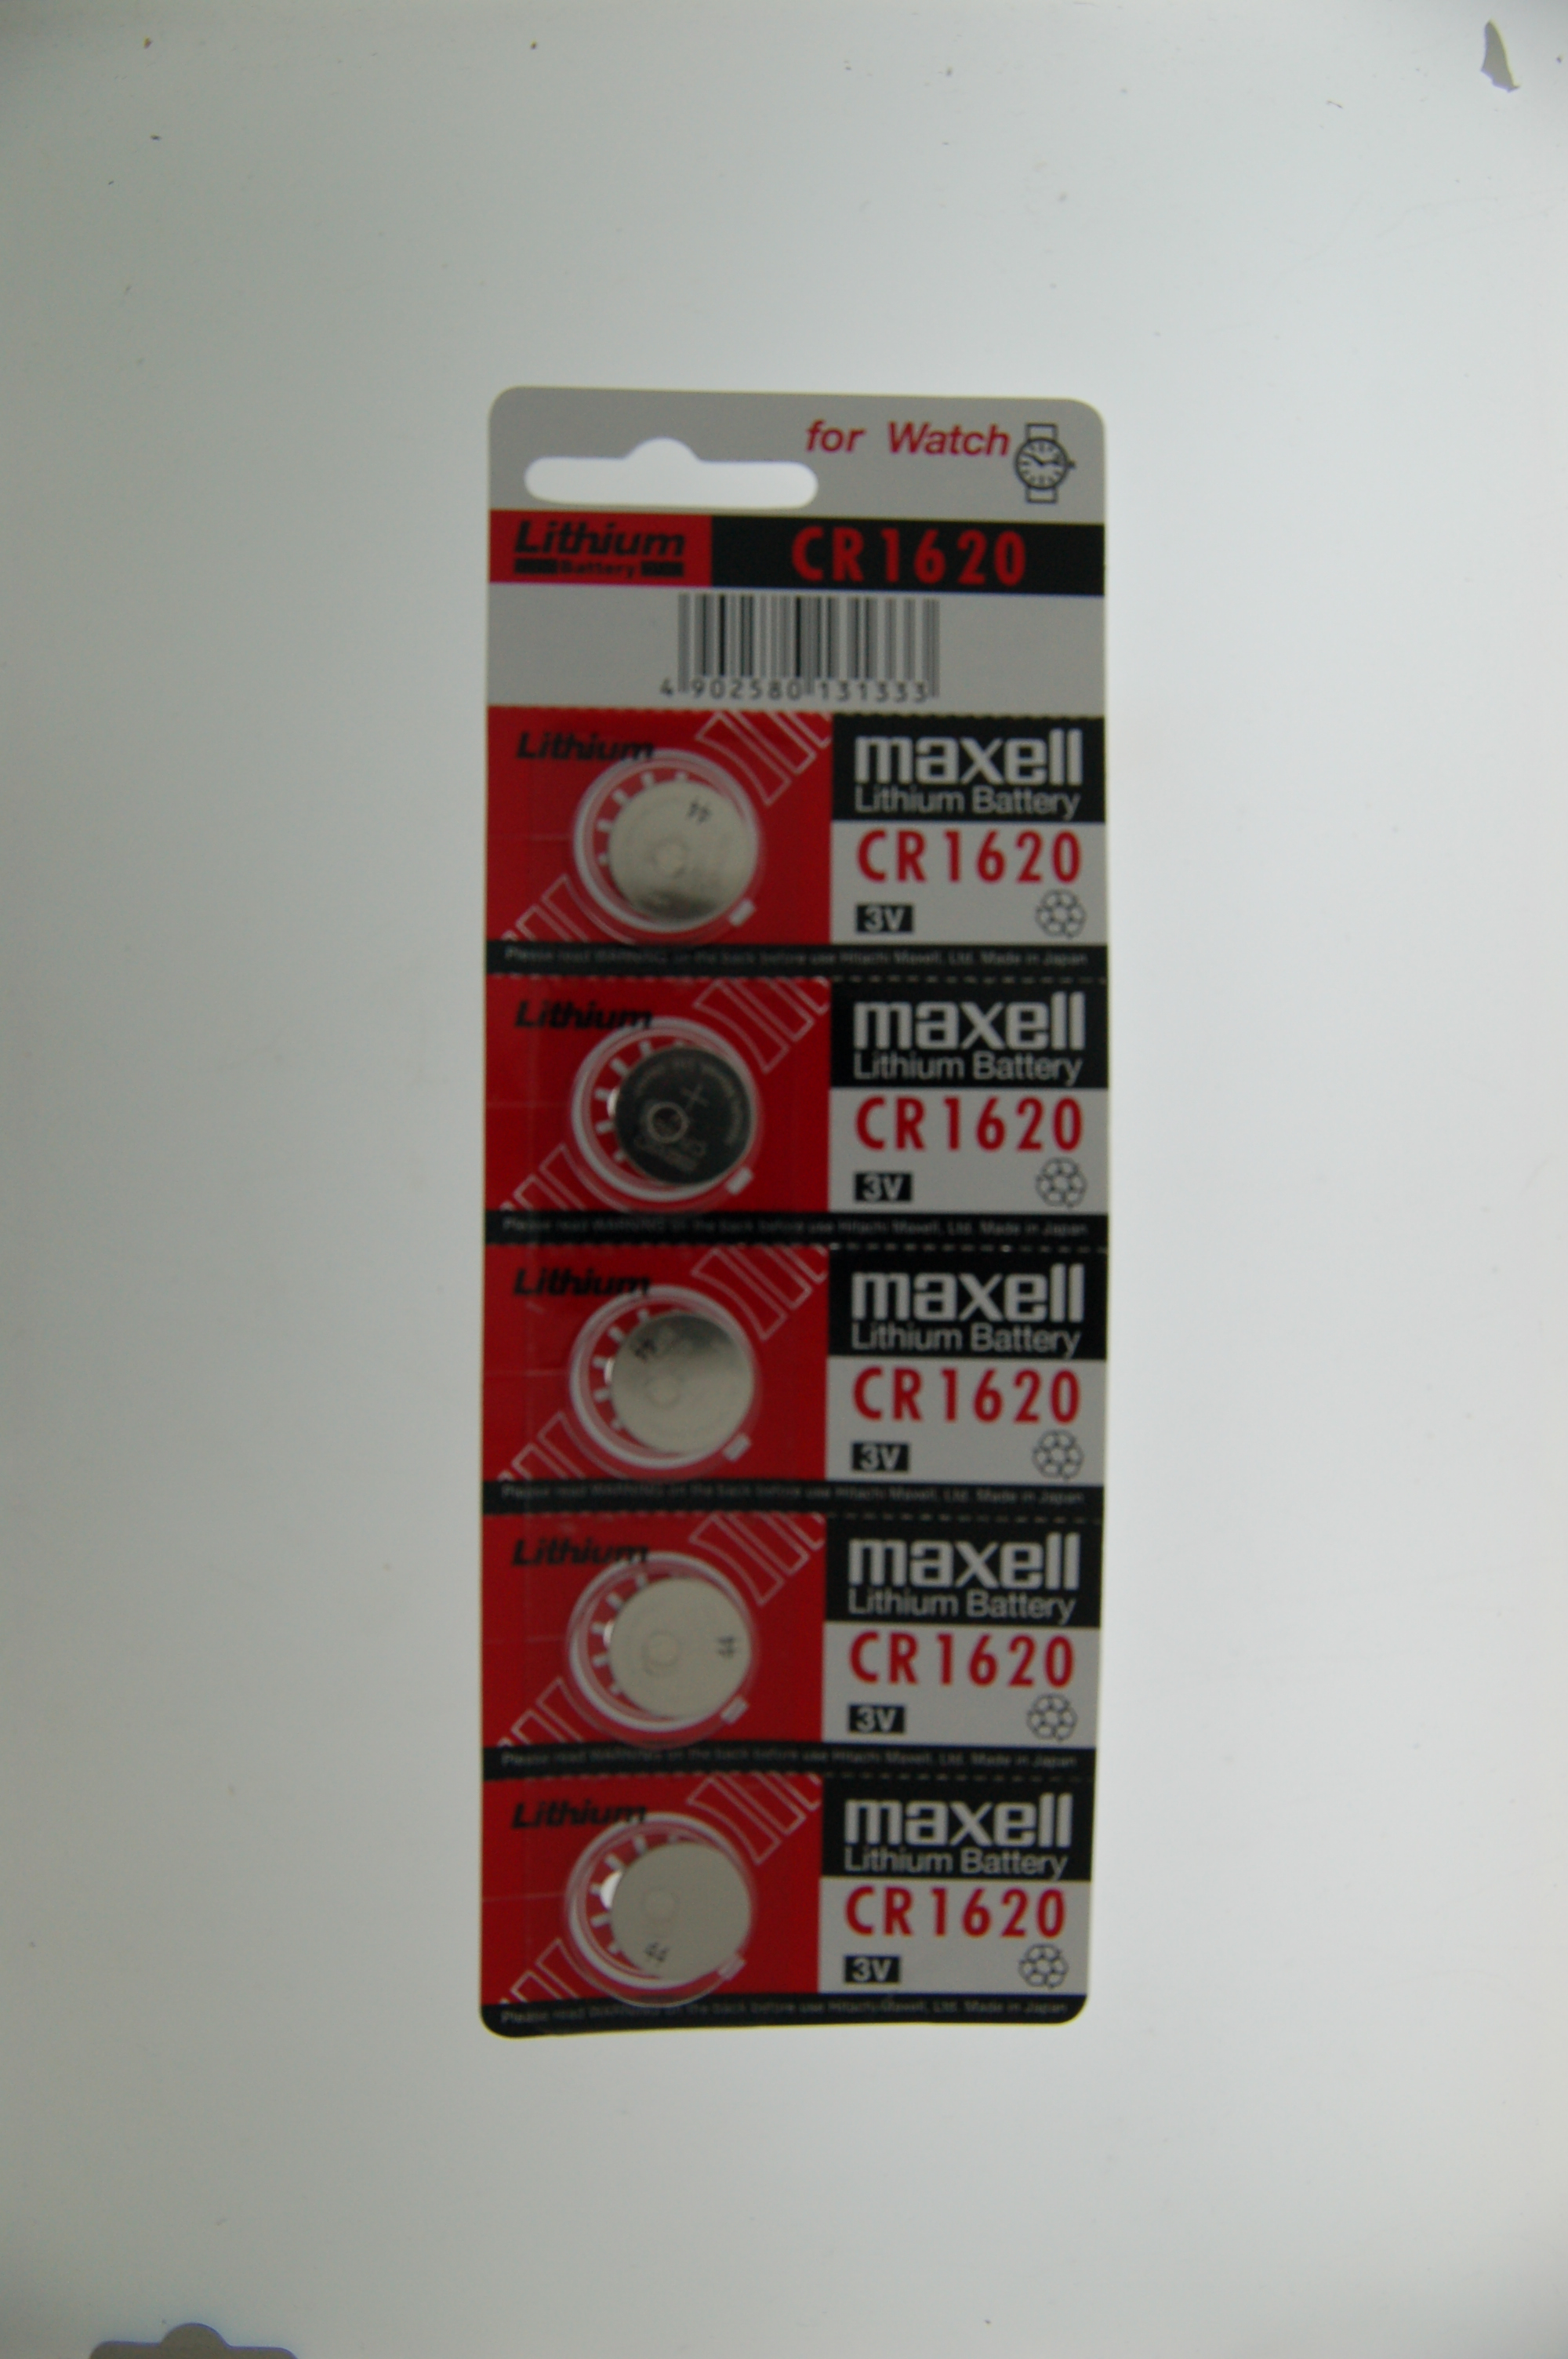 Maxell Lithium Battery CR1620